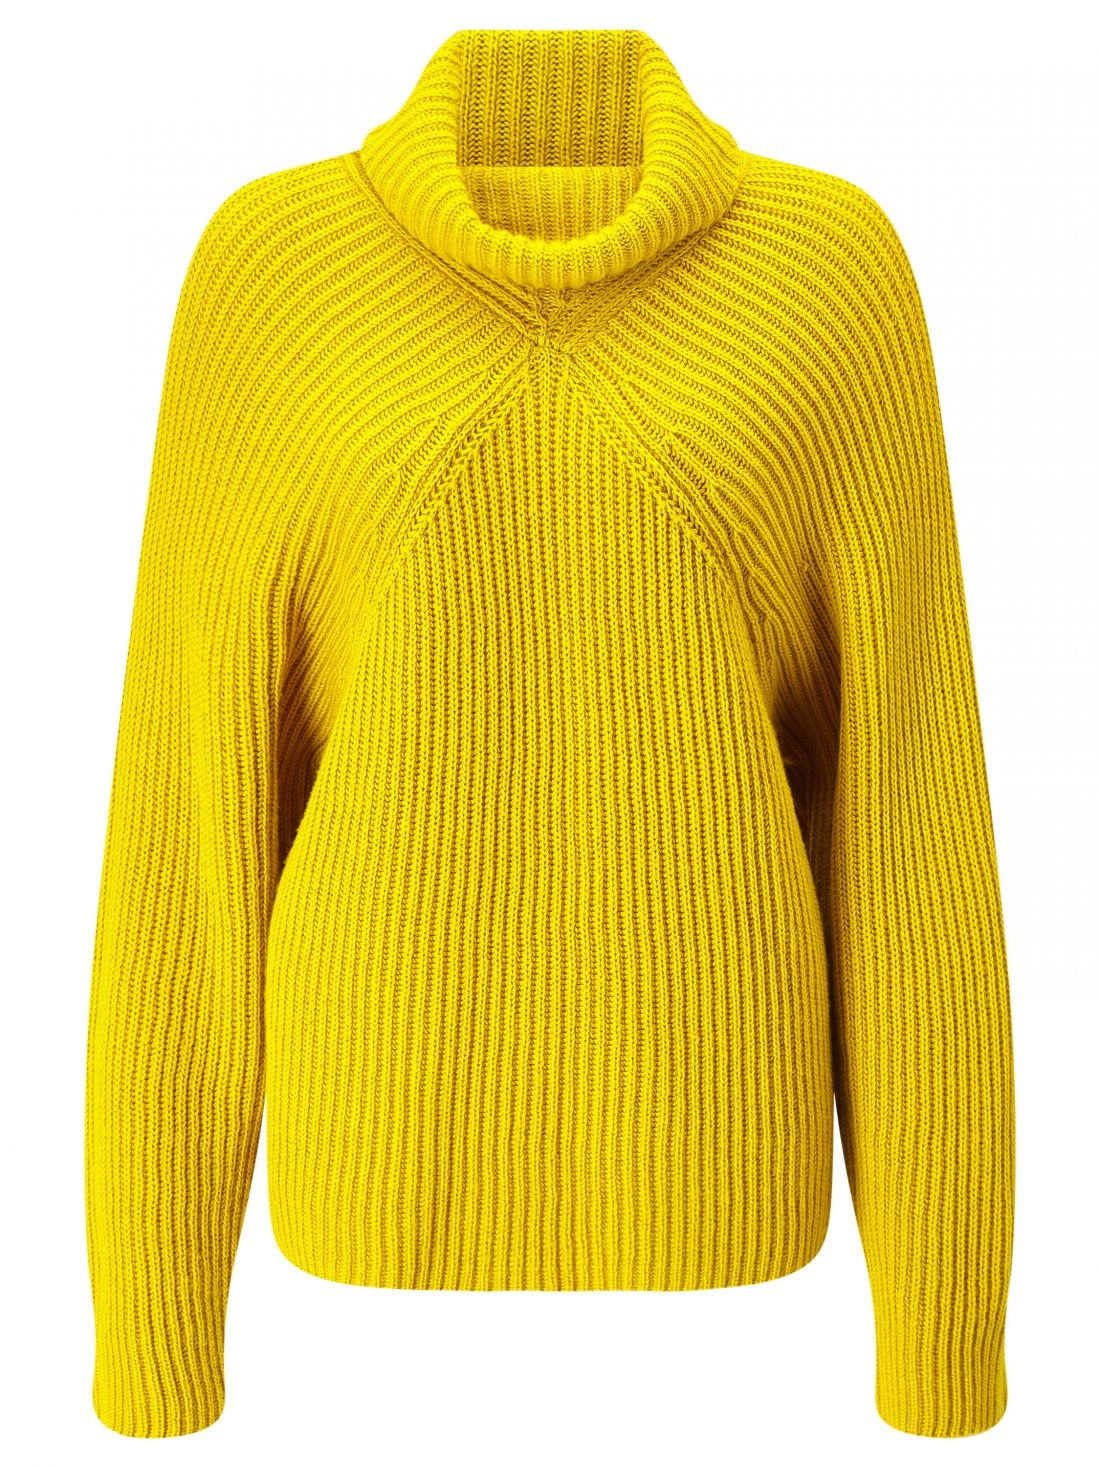 Balloon sleeved and bright structured jumpers? Issa look!